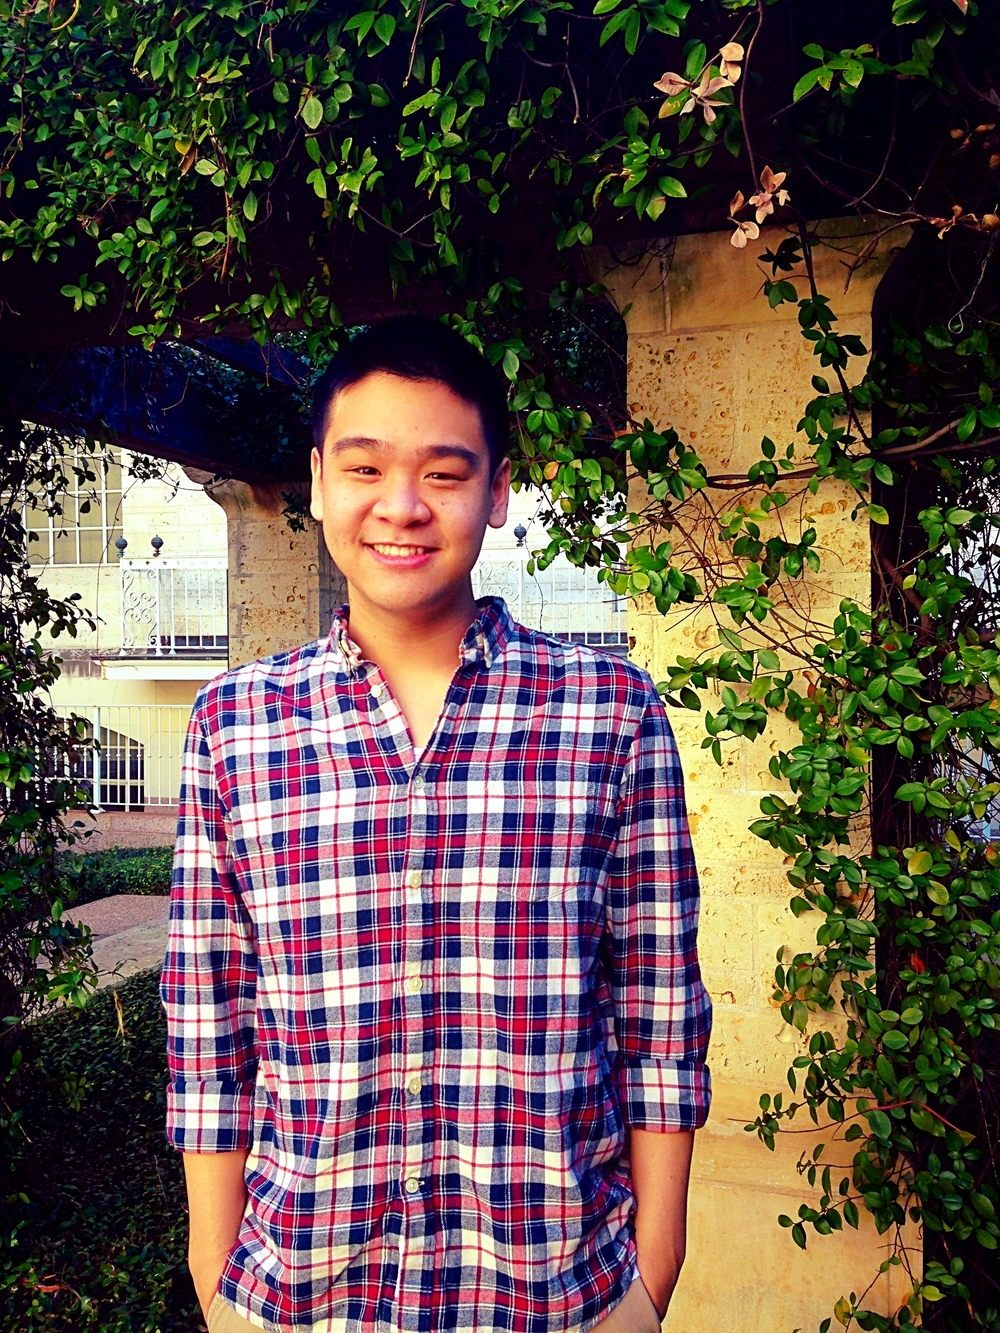 "Thomas Nguyen is an aspiring physician and poet, and currently attends the University of Texas at Austin, where he is a third-year undergraduate student studying Neuroscience and Creative Writing. He has previously been published in The Healing Muse. His poem ""6 Ways of Looking at a Friend"" appears in the Spring 2016 Intima."